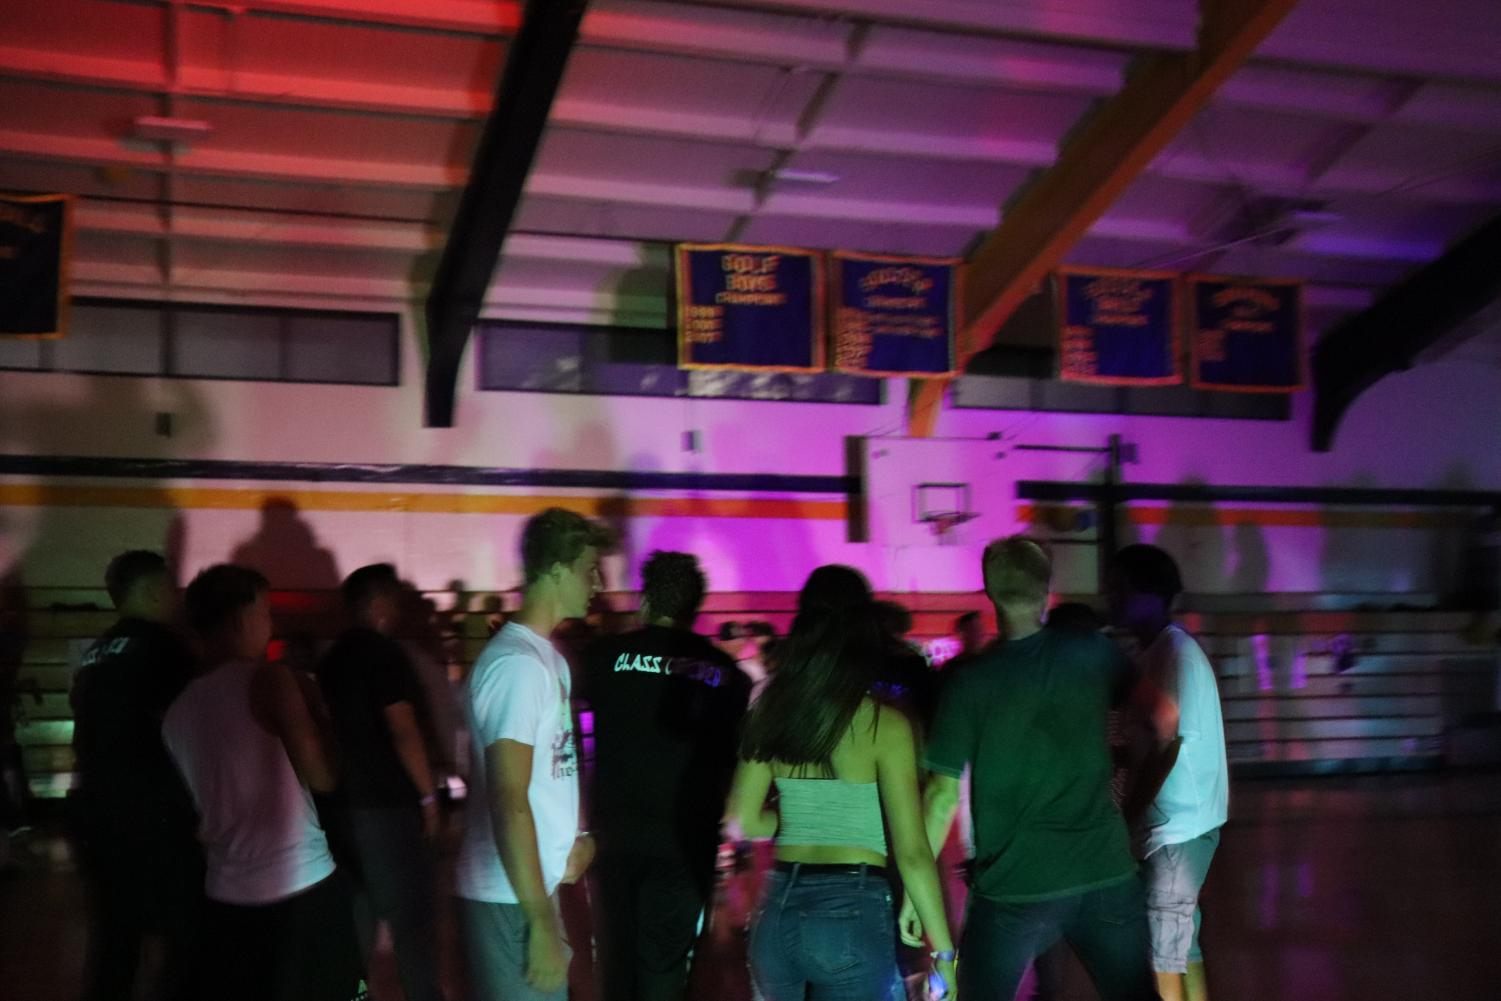 Lincoln students busting a move on the dance floor! While enjoying the music being played at the dance. August 16, 2019 at the Lincoln Gym. (Andrea Saldana/Lion Tales)